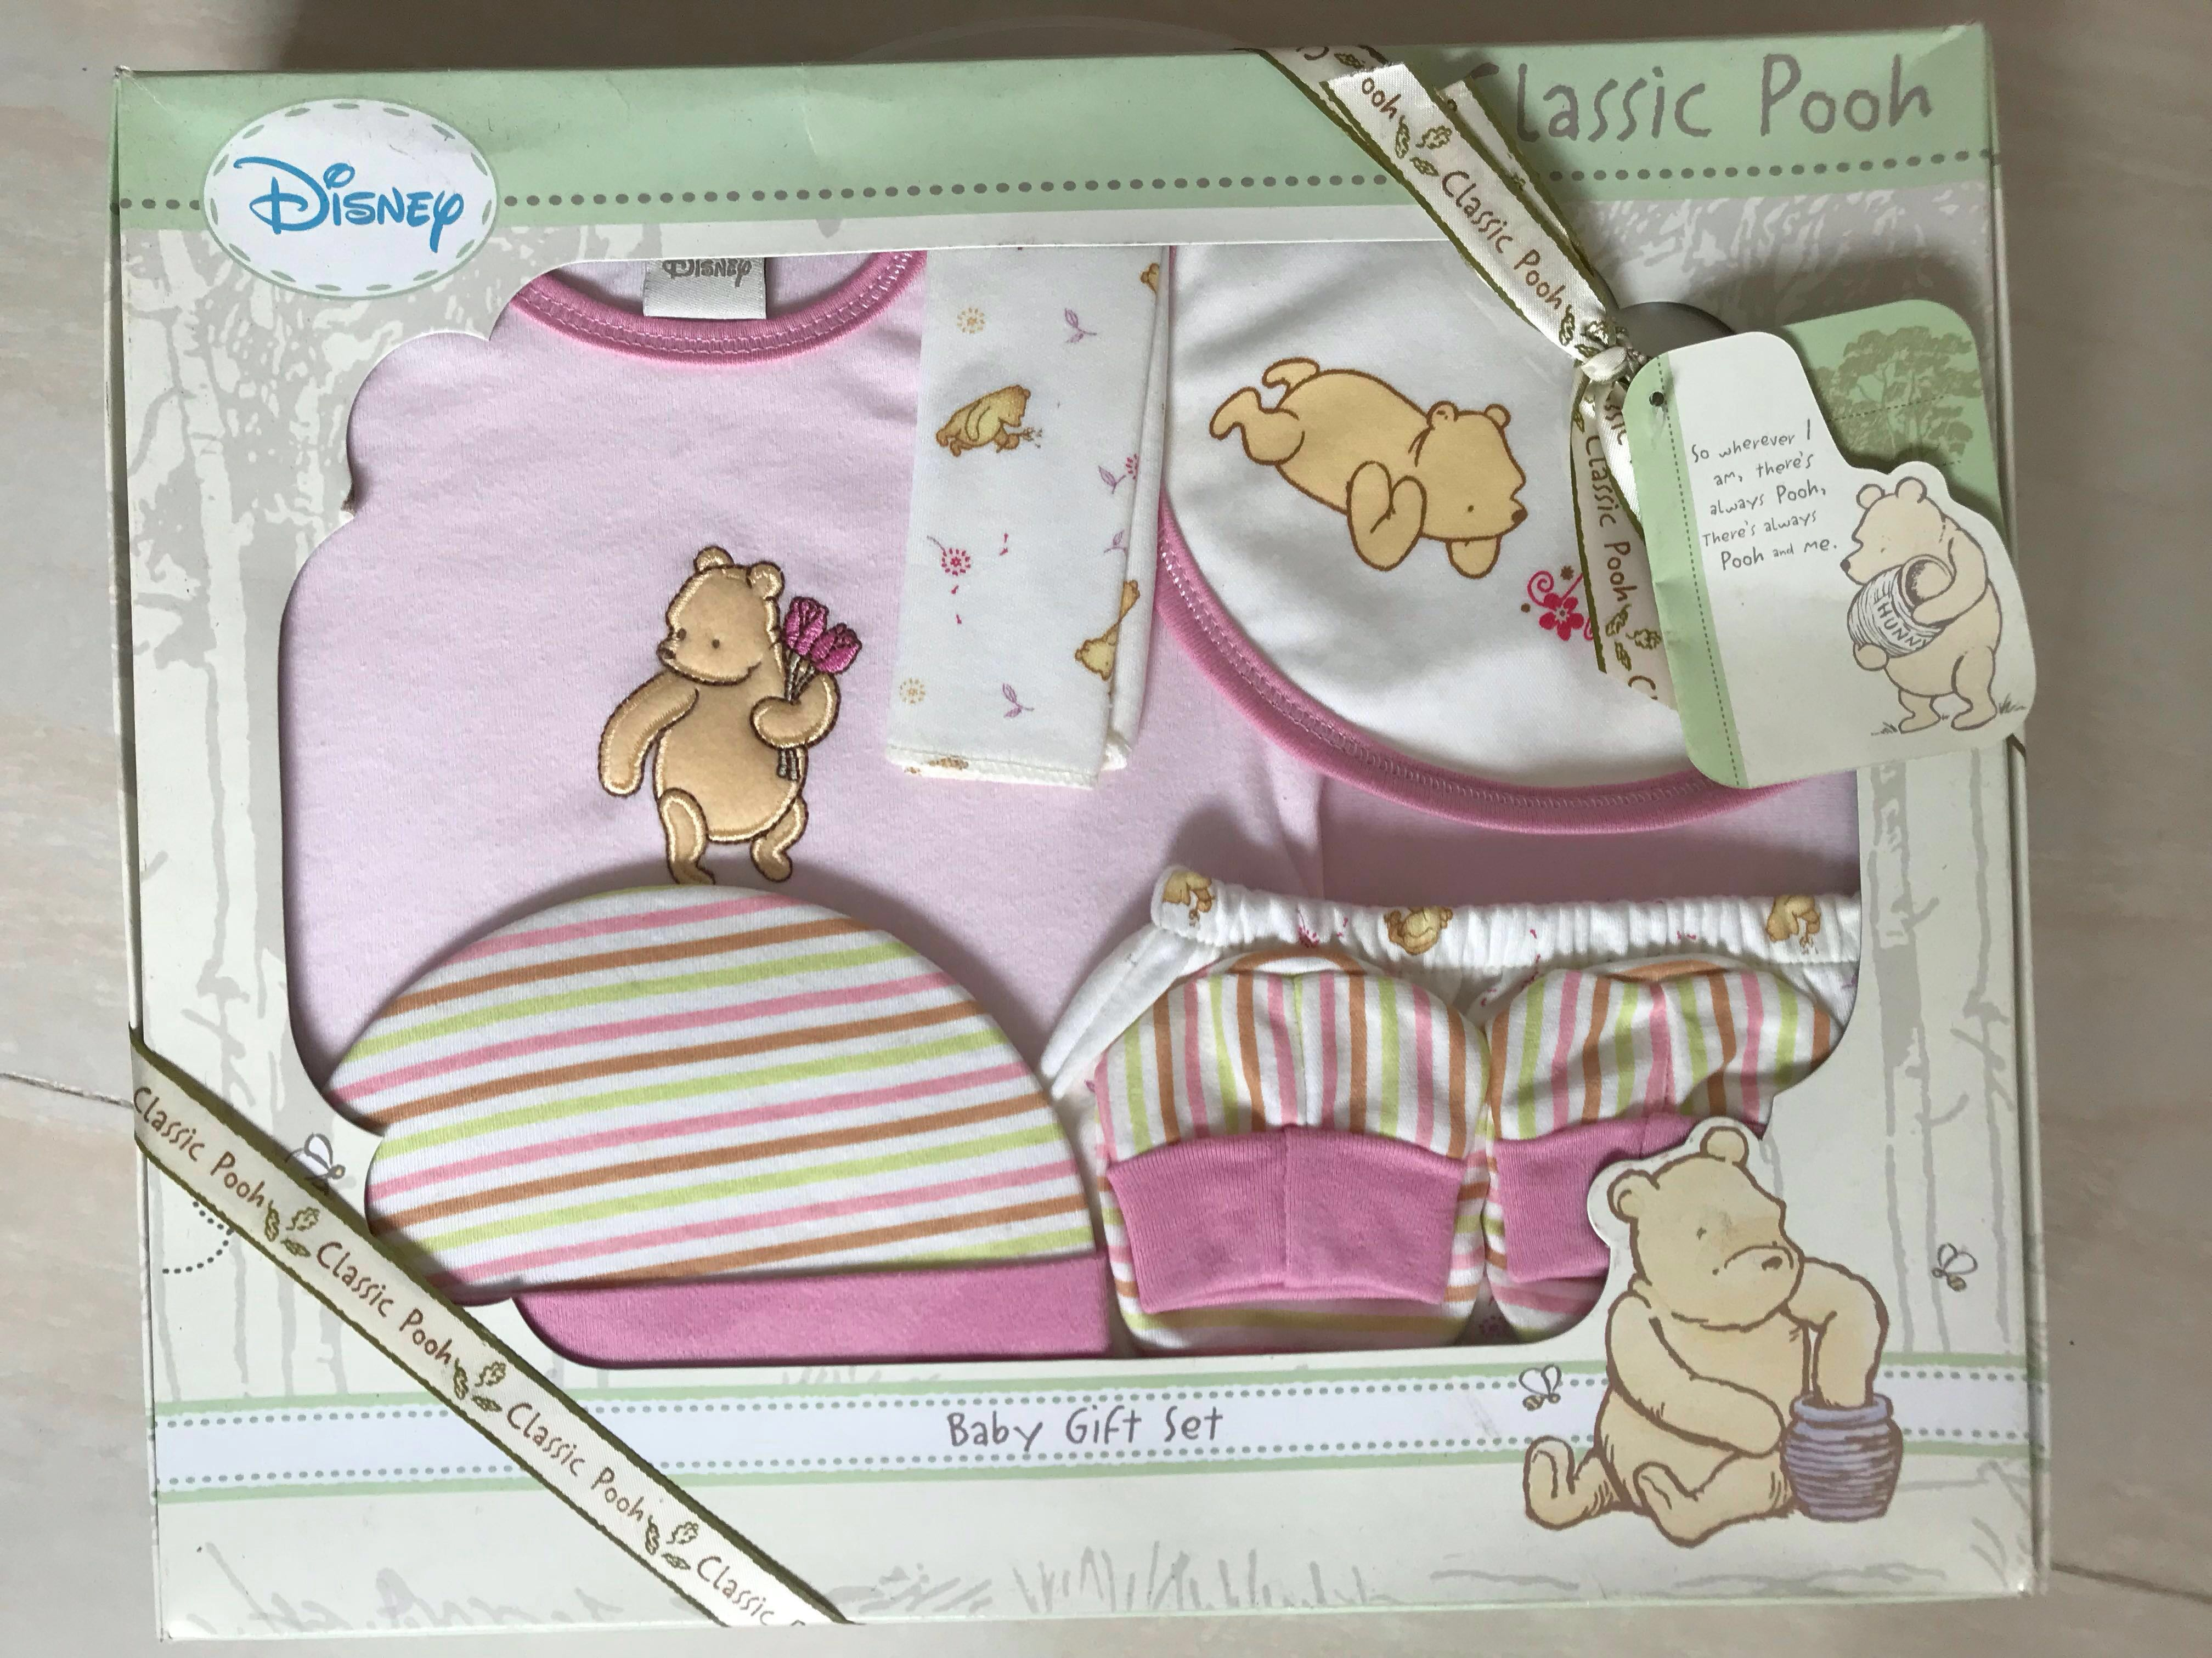 bee9fae122db New born baby gift sets (Winnie the Pooh)